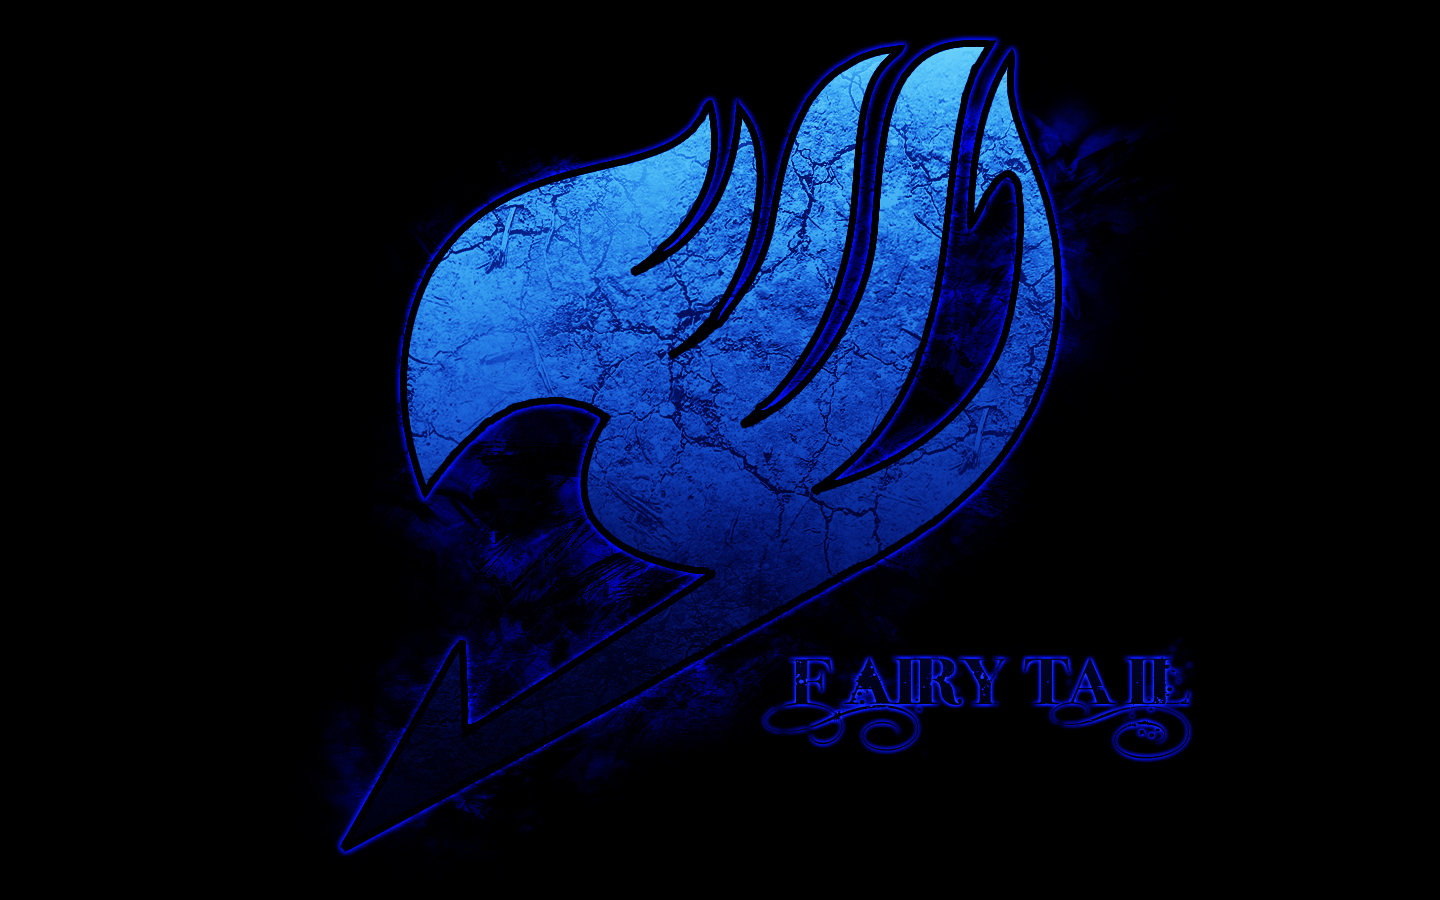 Fairy tail magique l - Fairy tail emblem ...